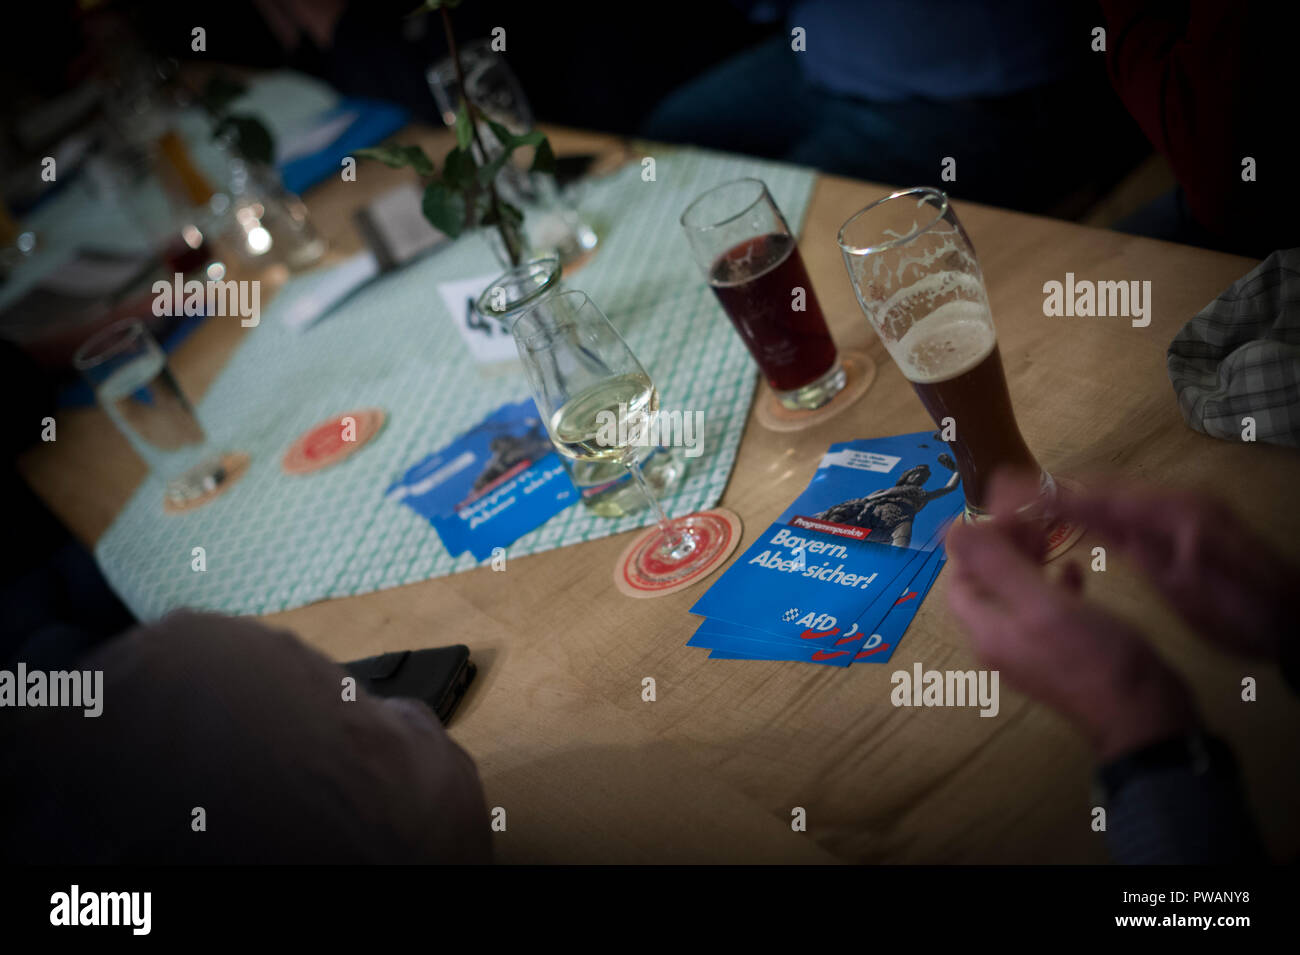 The Bierkeller in Rosenheim, Bavaria where the AfD held a political rally - Stock Image